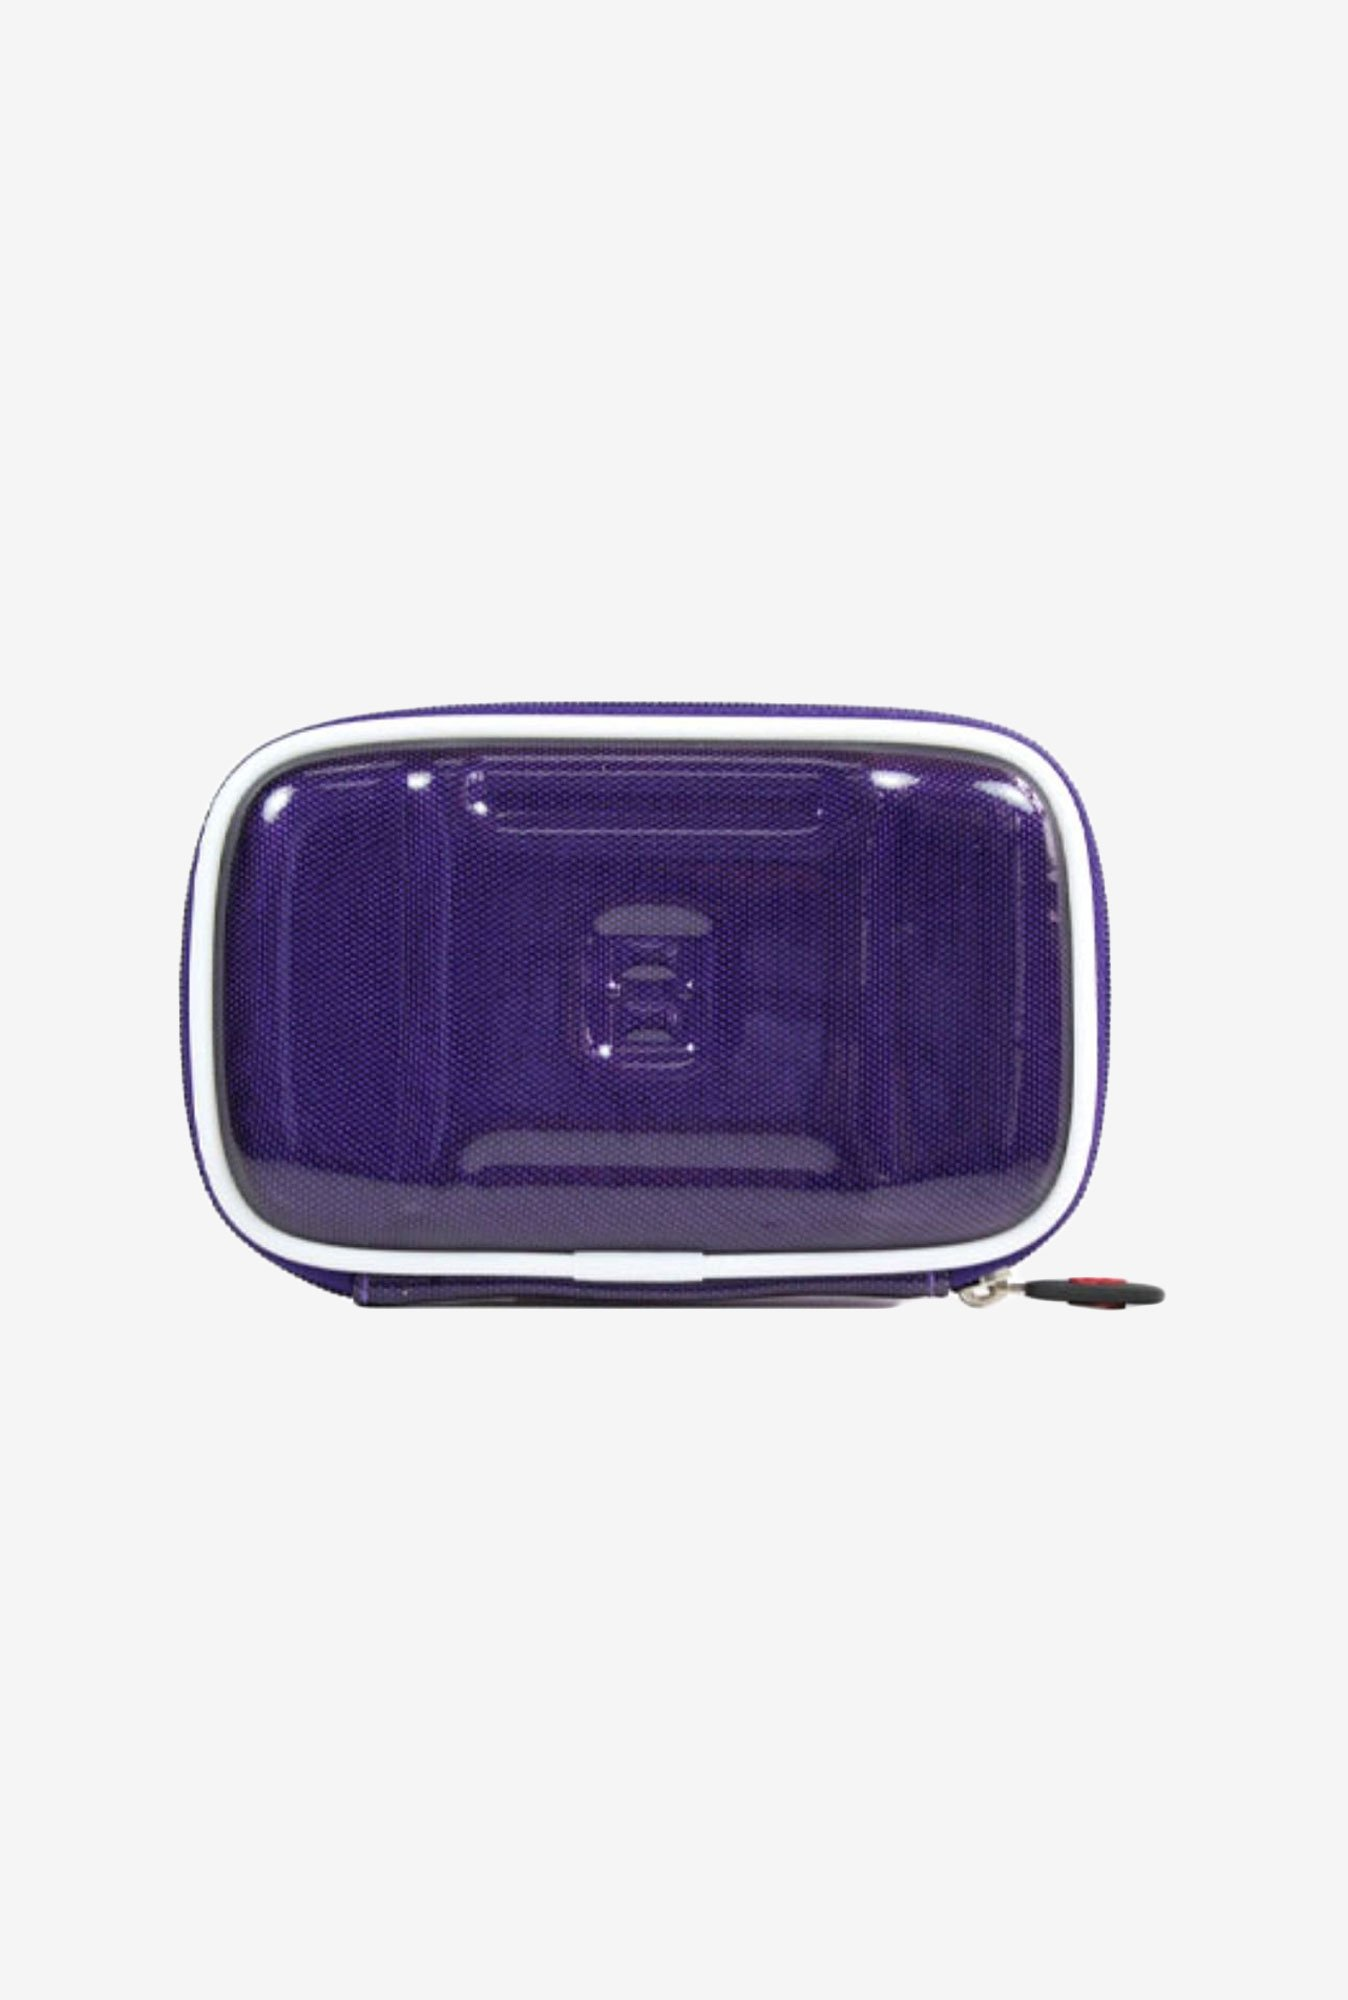 "Kroo CARBON Hard Case for 4.3"" GPS/UHD Camcorder (Purple)"